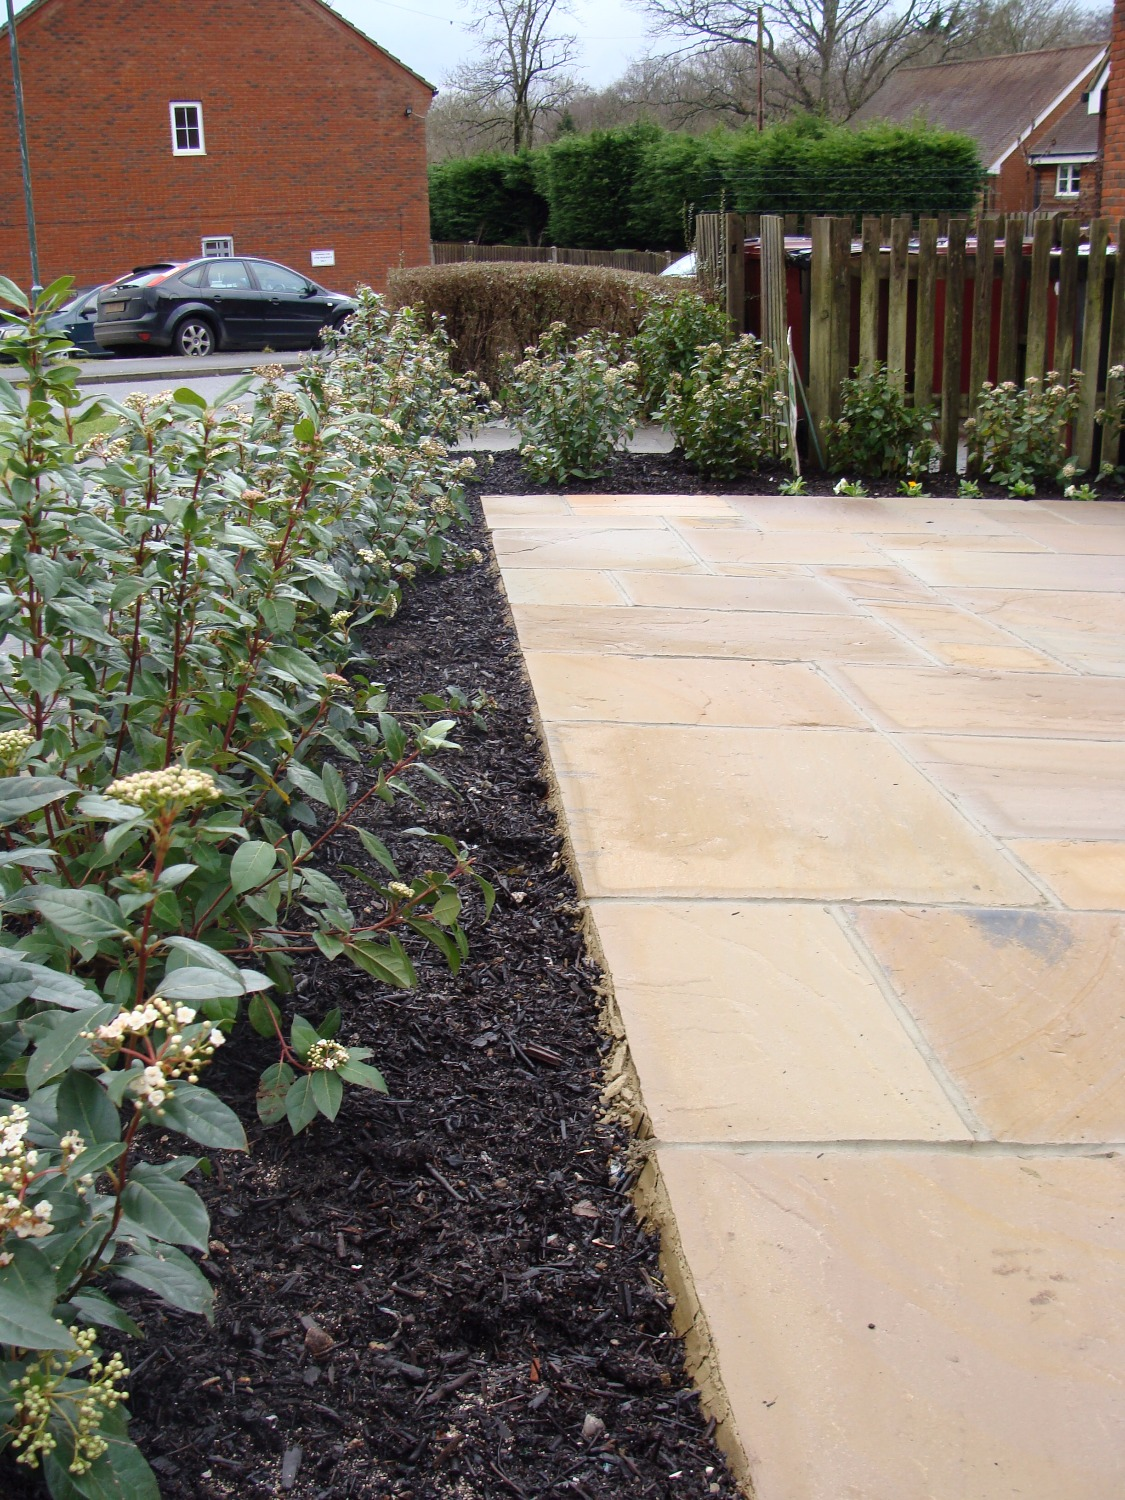 Sandstone paving viburnum hedge